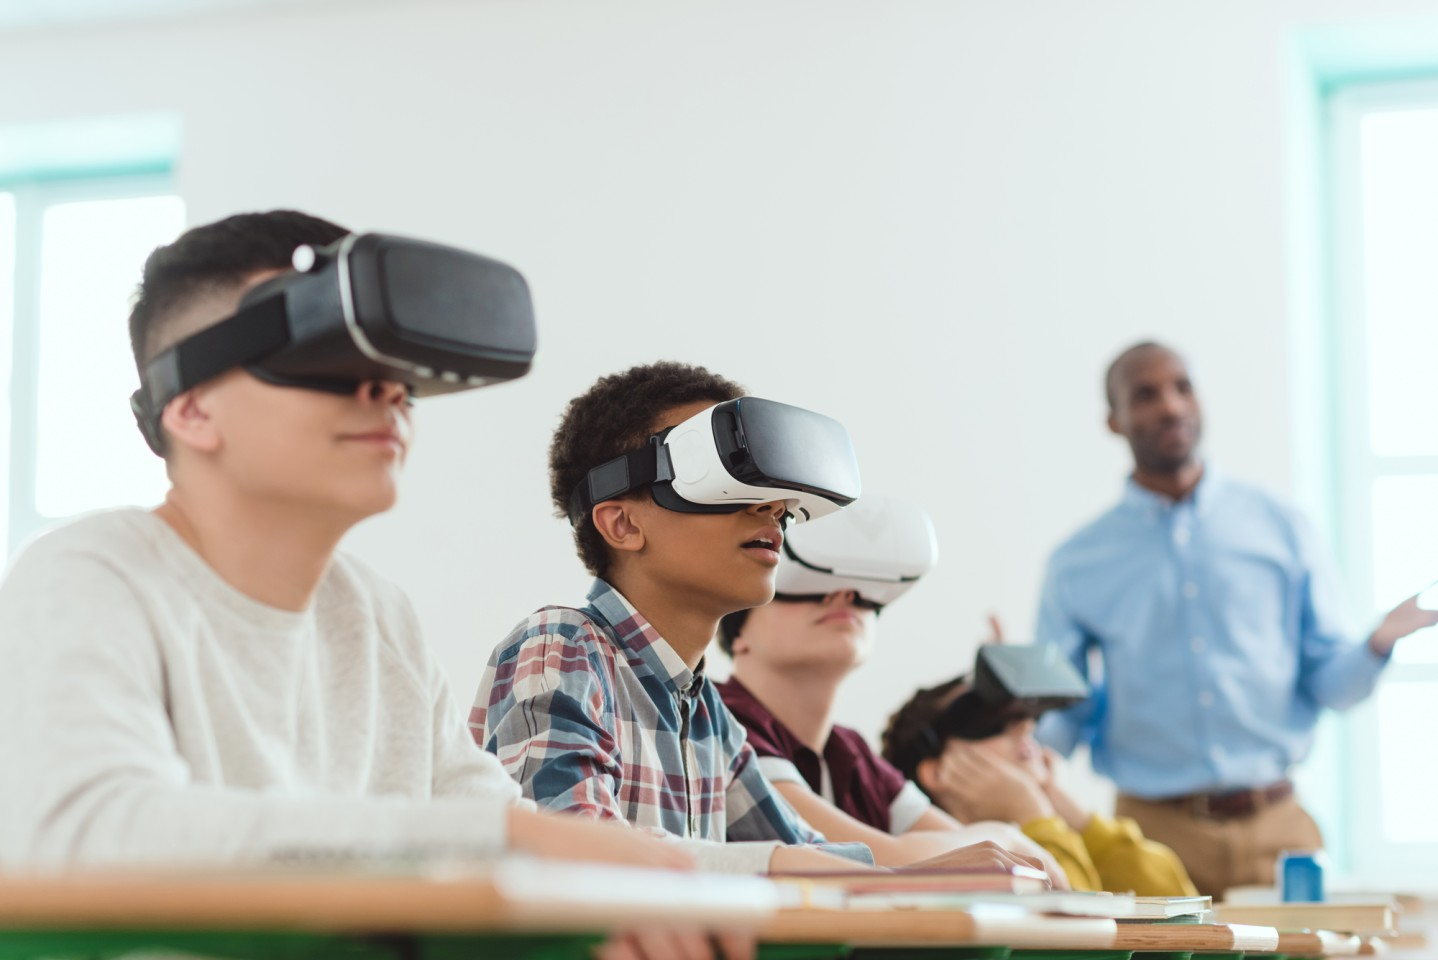 Virtual reality may prevent effective formation of visual memories | New Atlas